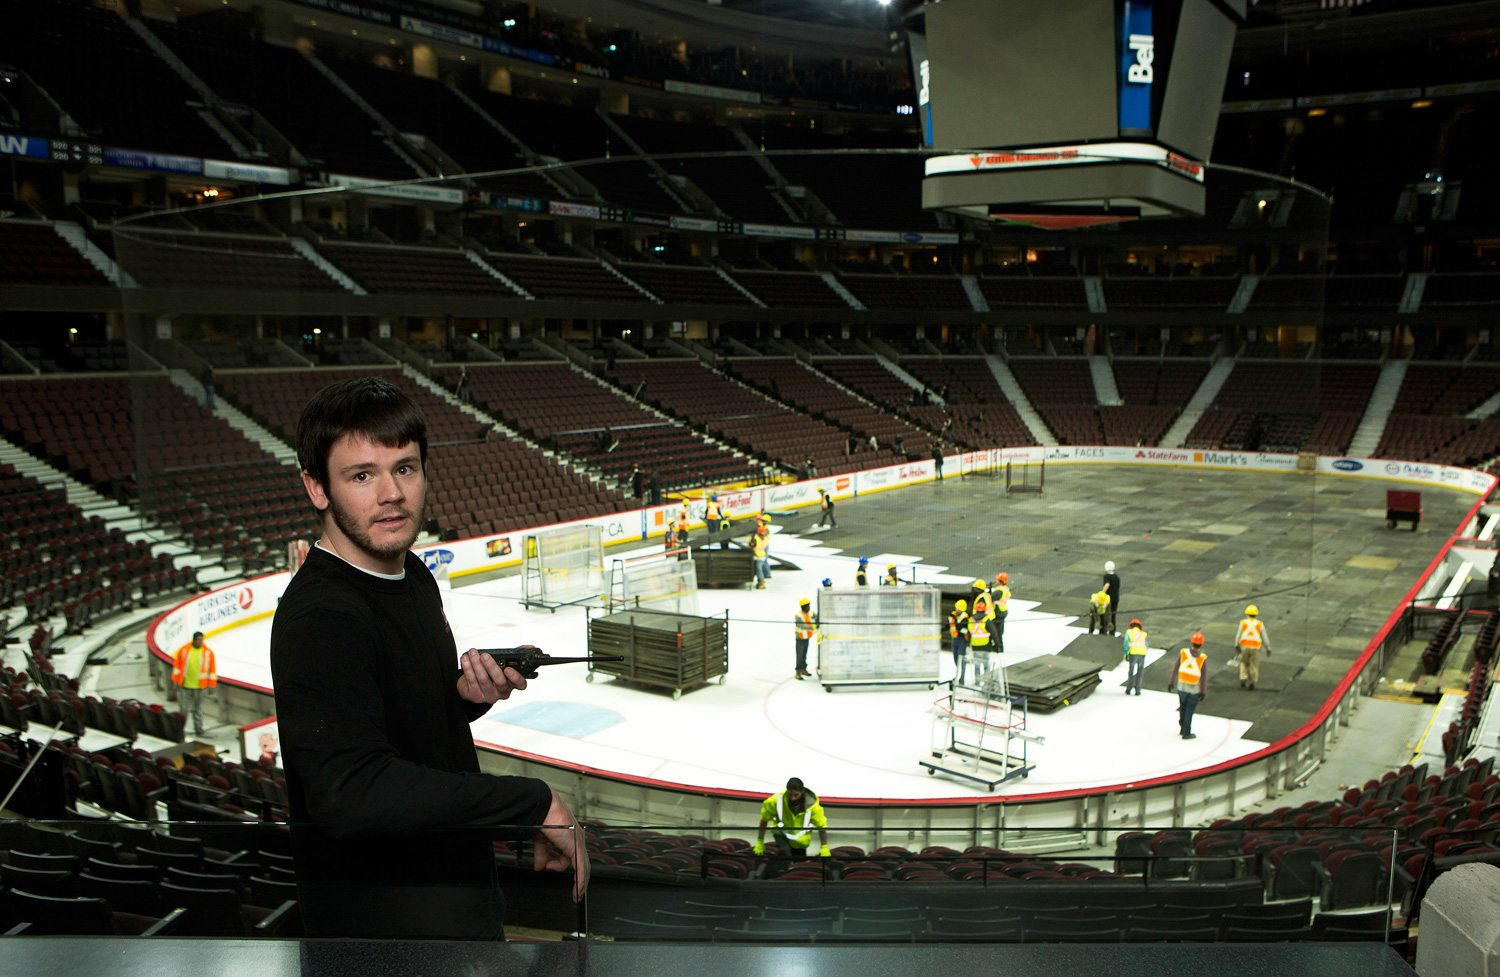 Steve Love, 24, Team Member, Canadian Tire Centre. Photo: Bill Grimshaw